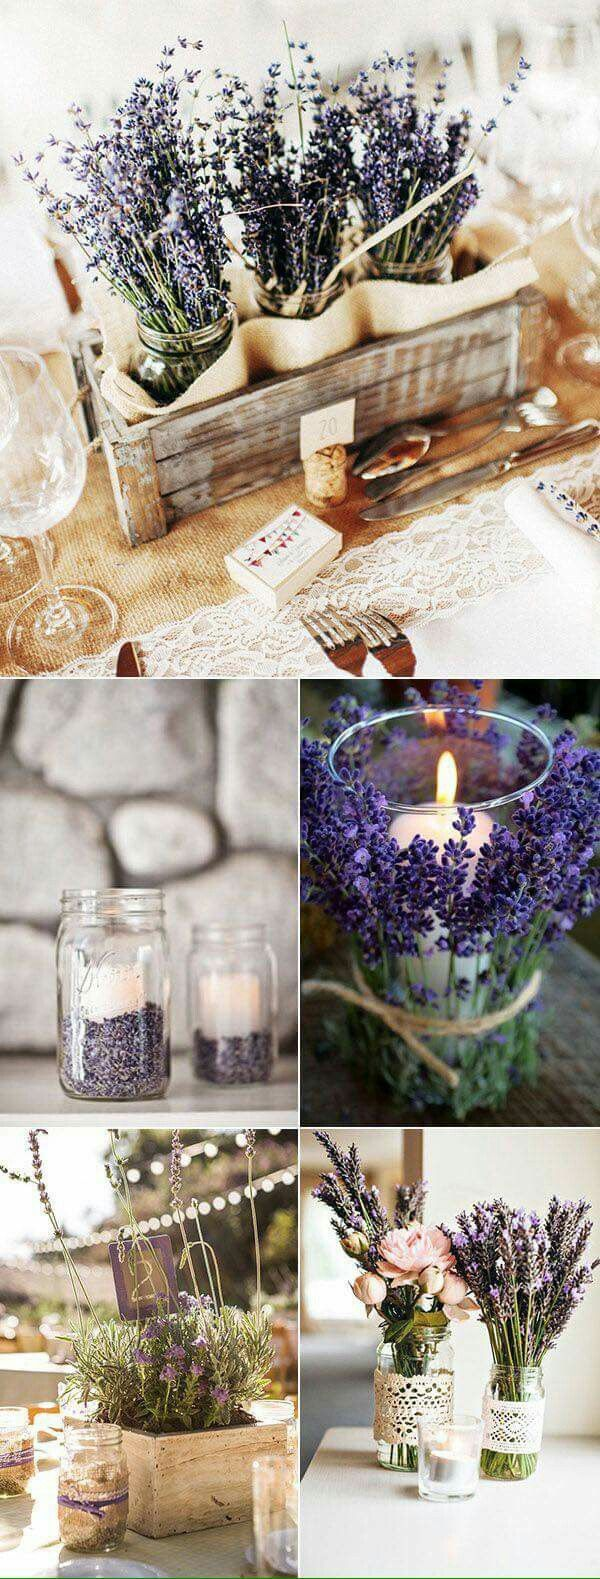 I love the jars filled with lavender to hold candles!!!